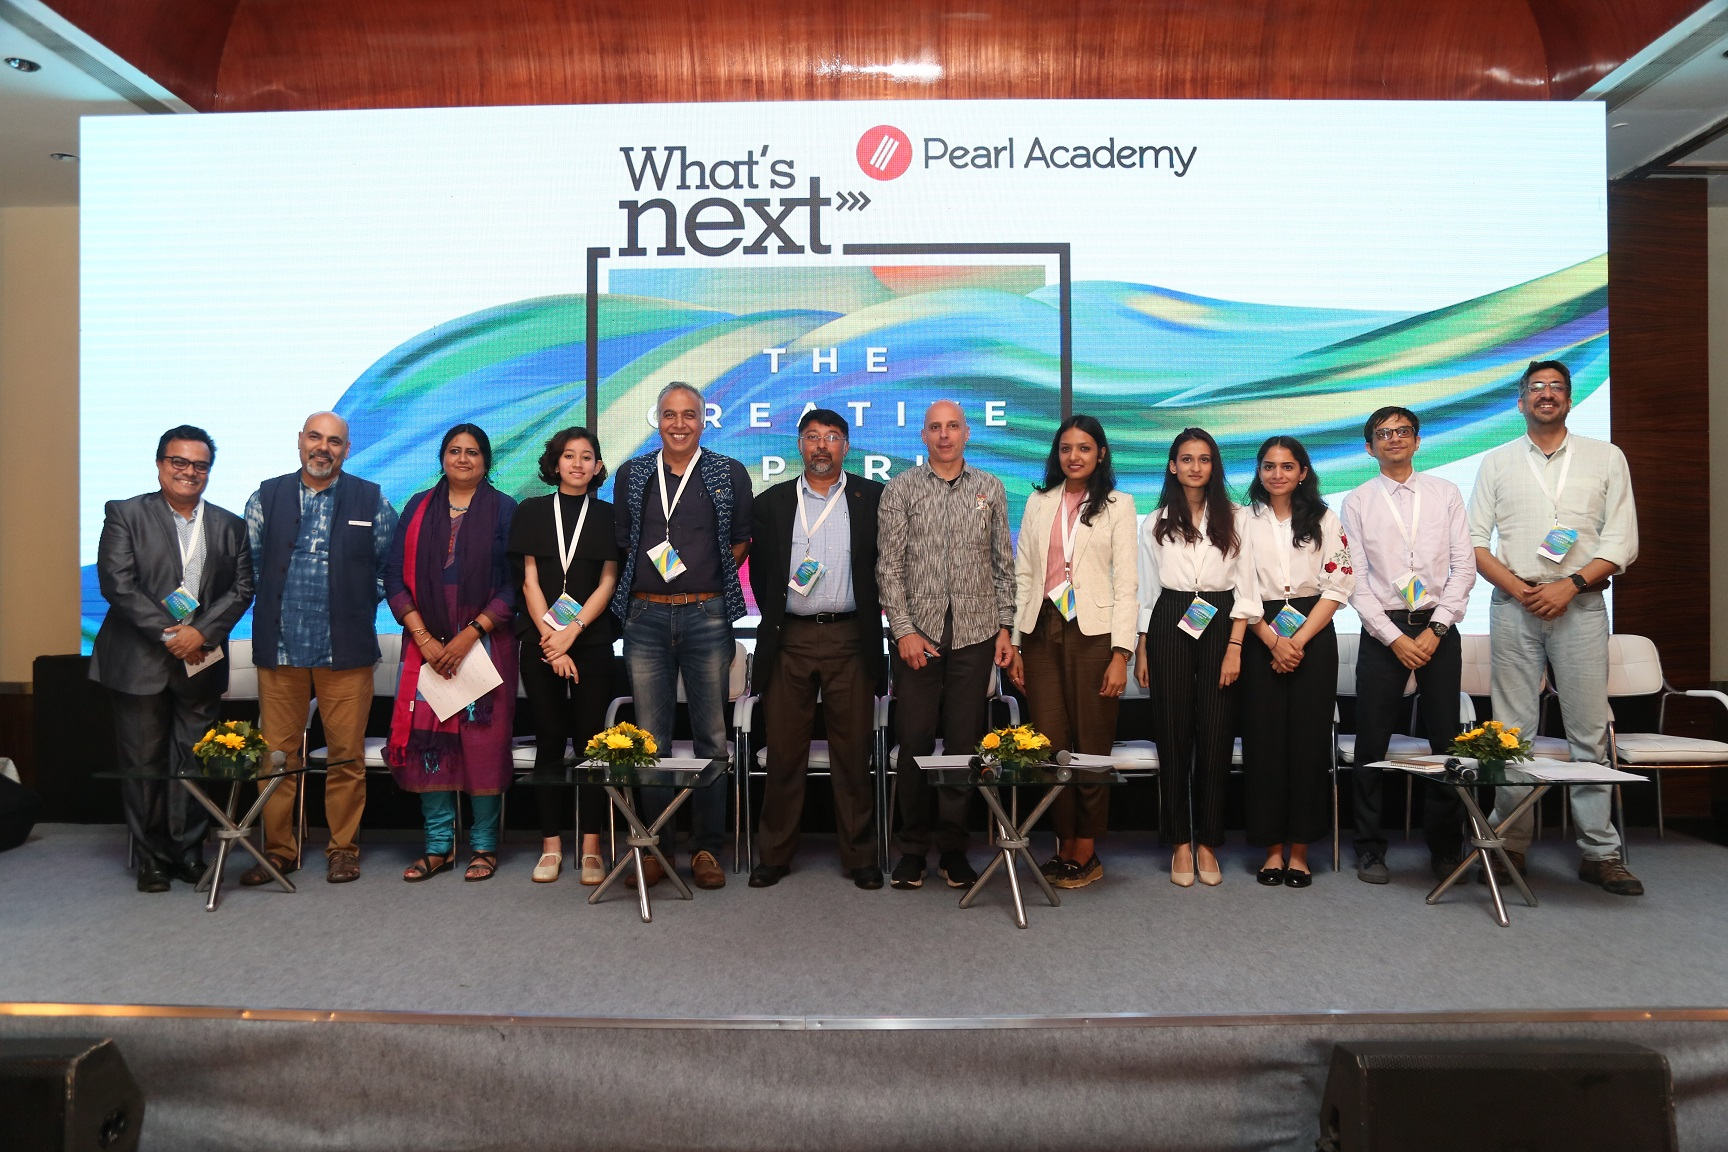 Pearl Academy Bangalore Courses Fees Placements Ranking Admission 2020